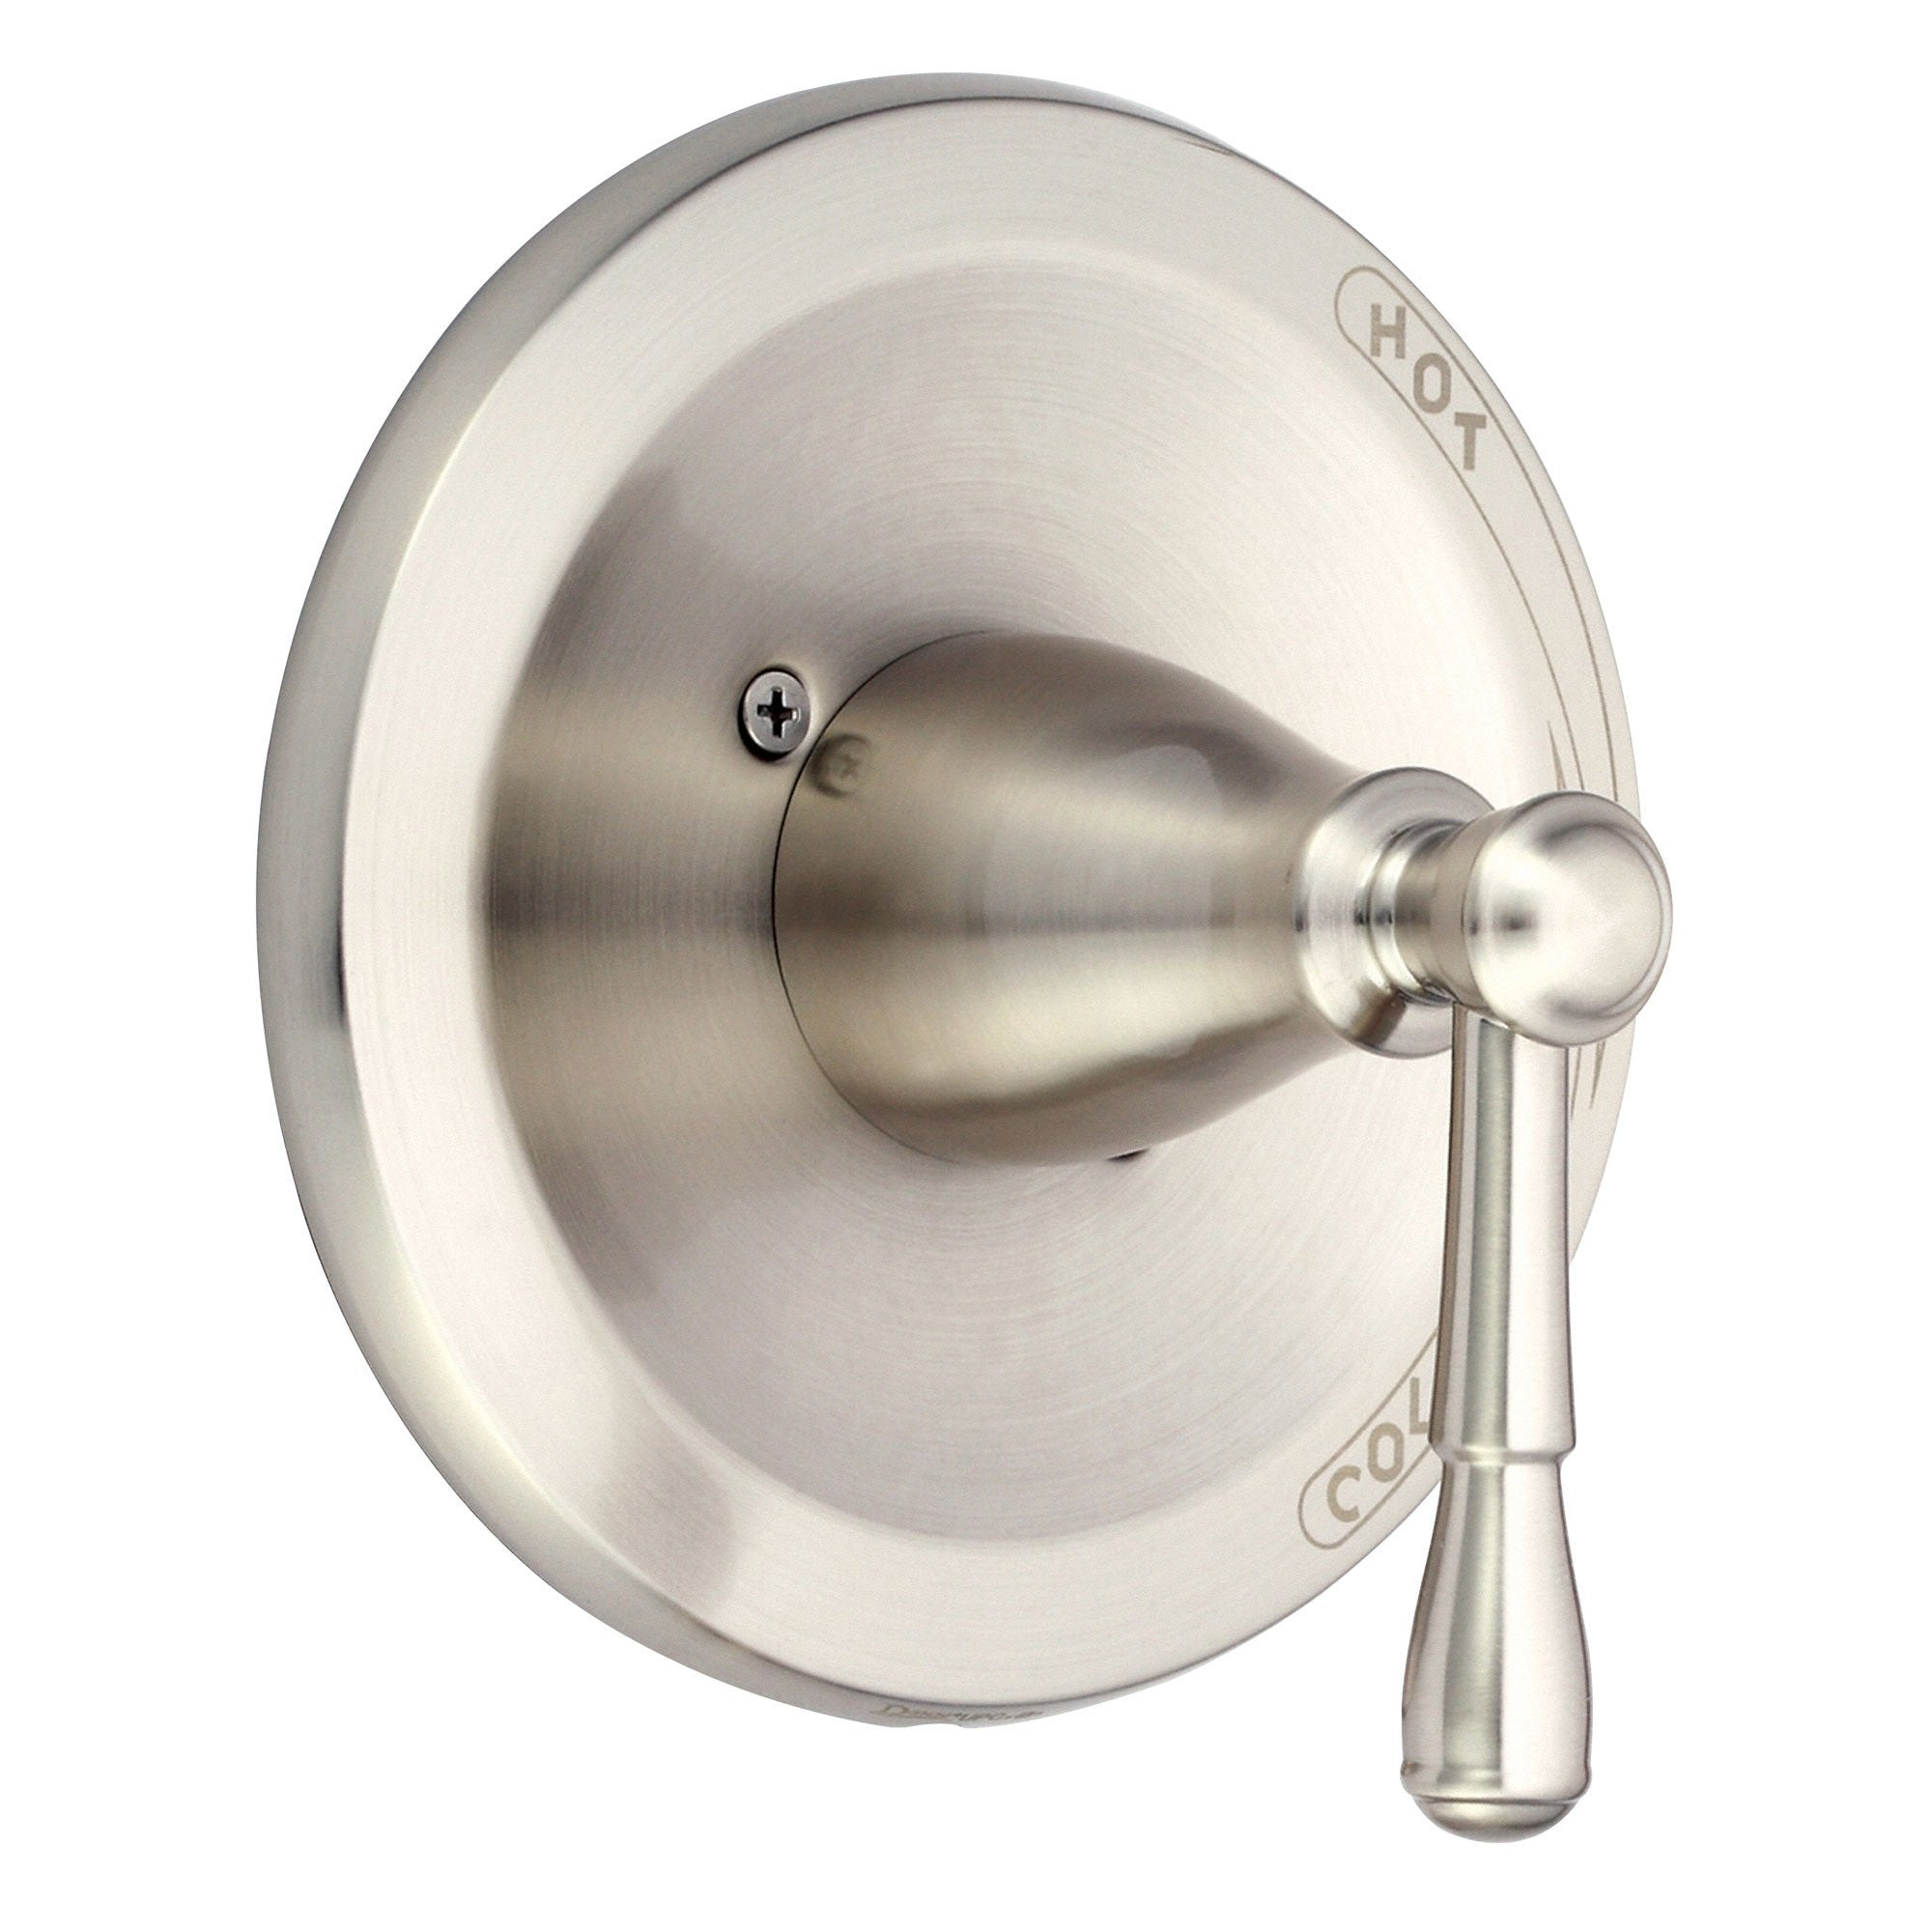 Danze Eastham Brushed Nickel Single Handle Pressure Balance Shower Control INCLUDES Rough-in Valve